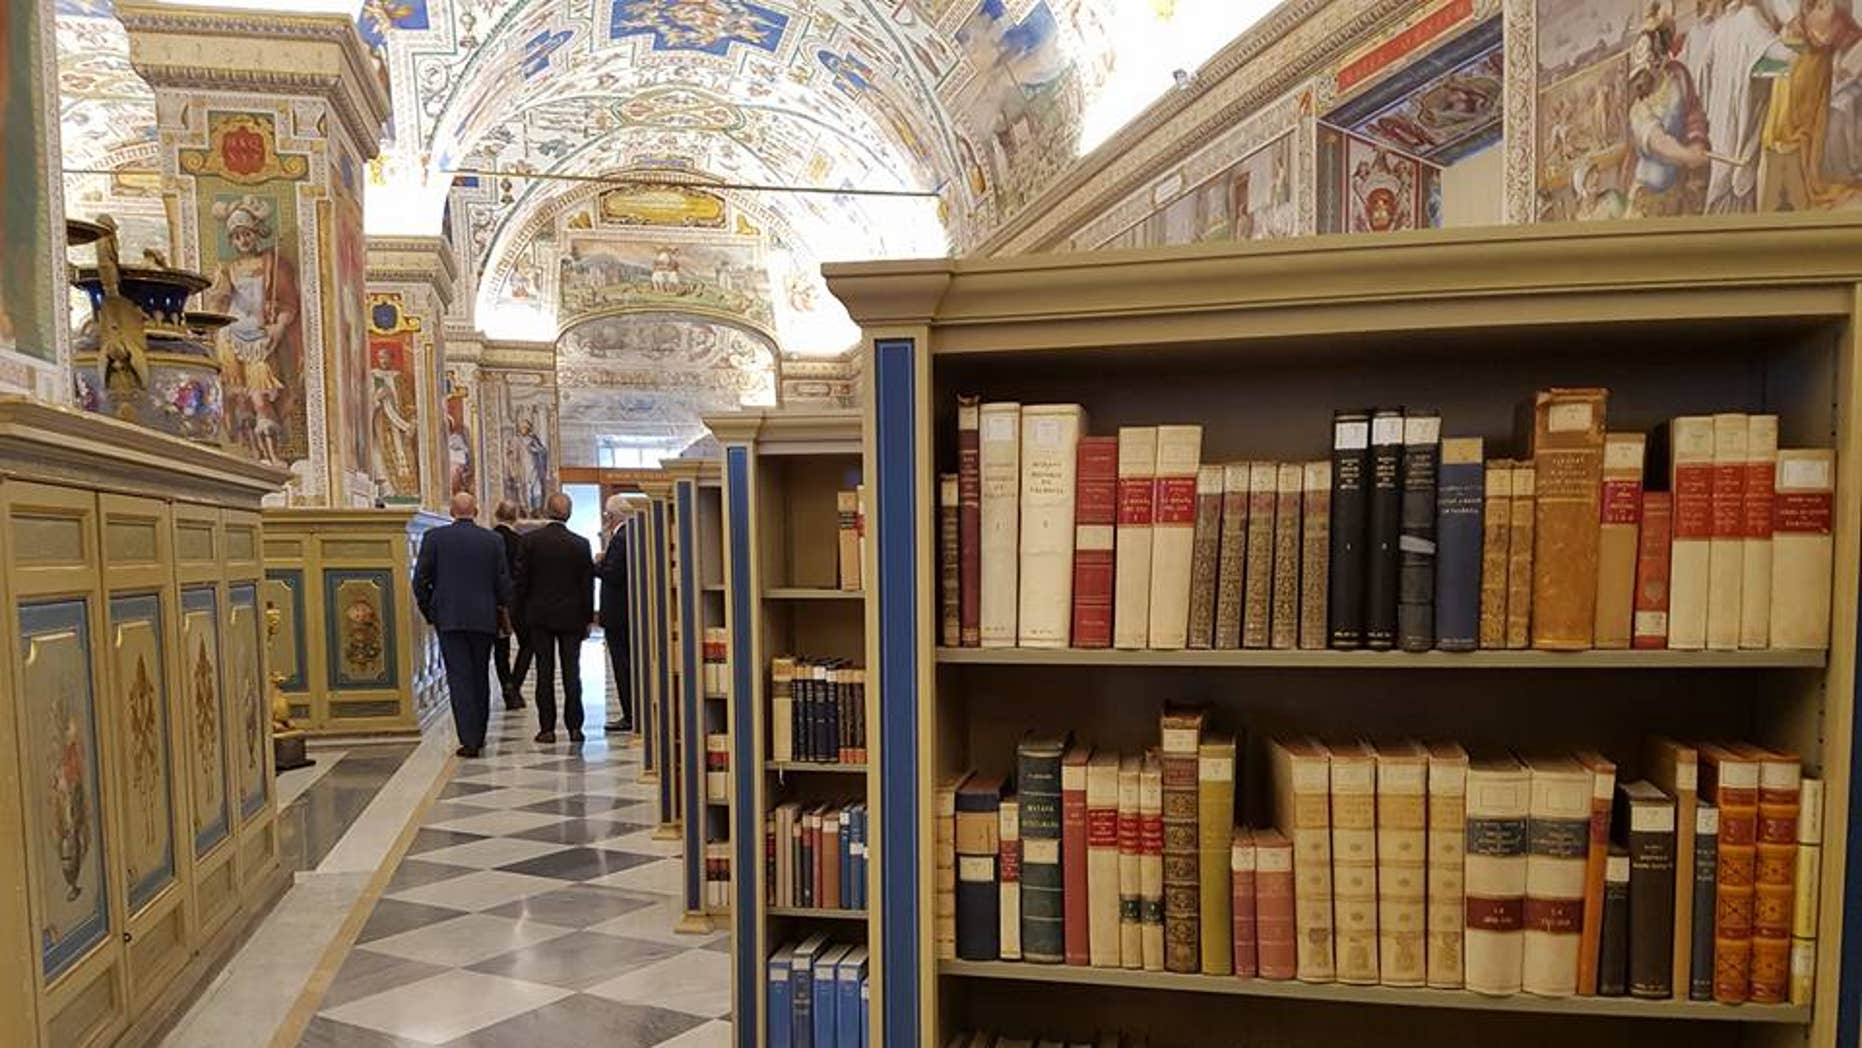 Representatives from ESA and the Vatican Apostolic Library signed a declaration to continue collaboration at a ceremony held at the Vatican Library on 4 Nov. 2016, followed by a tour of the Library. (European Space Agency)